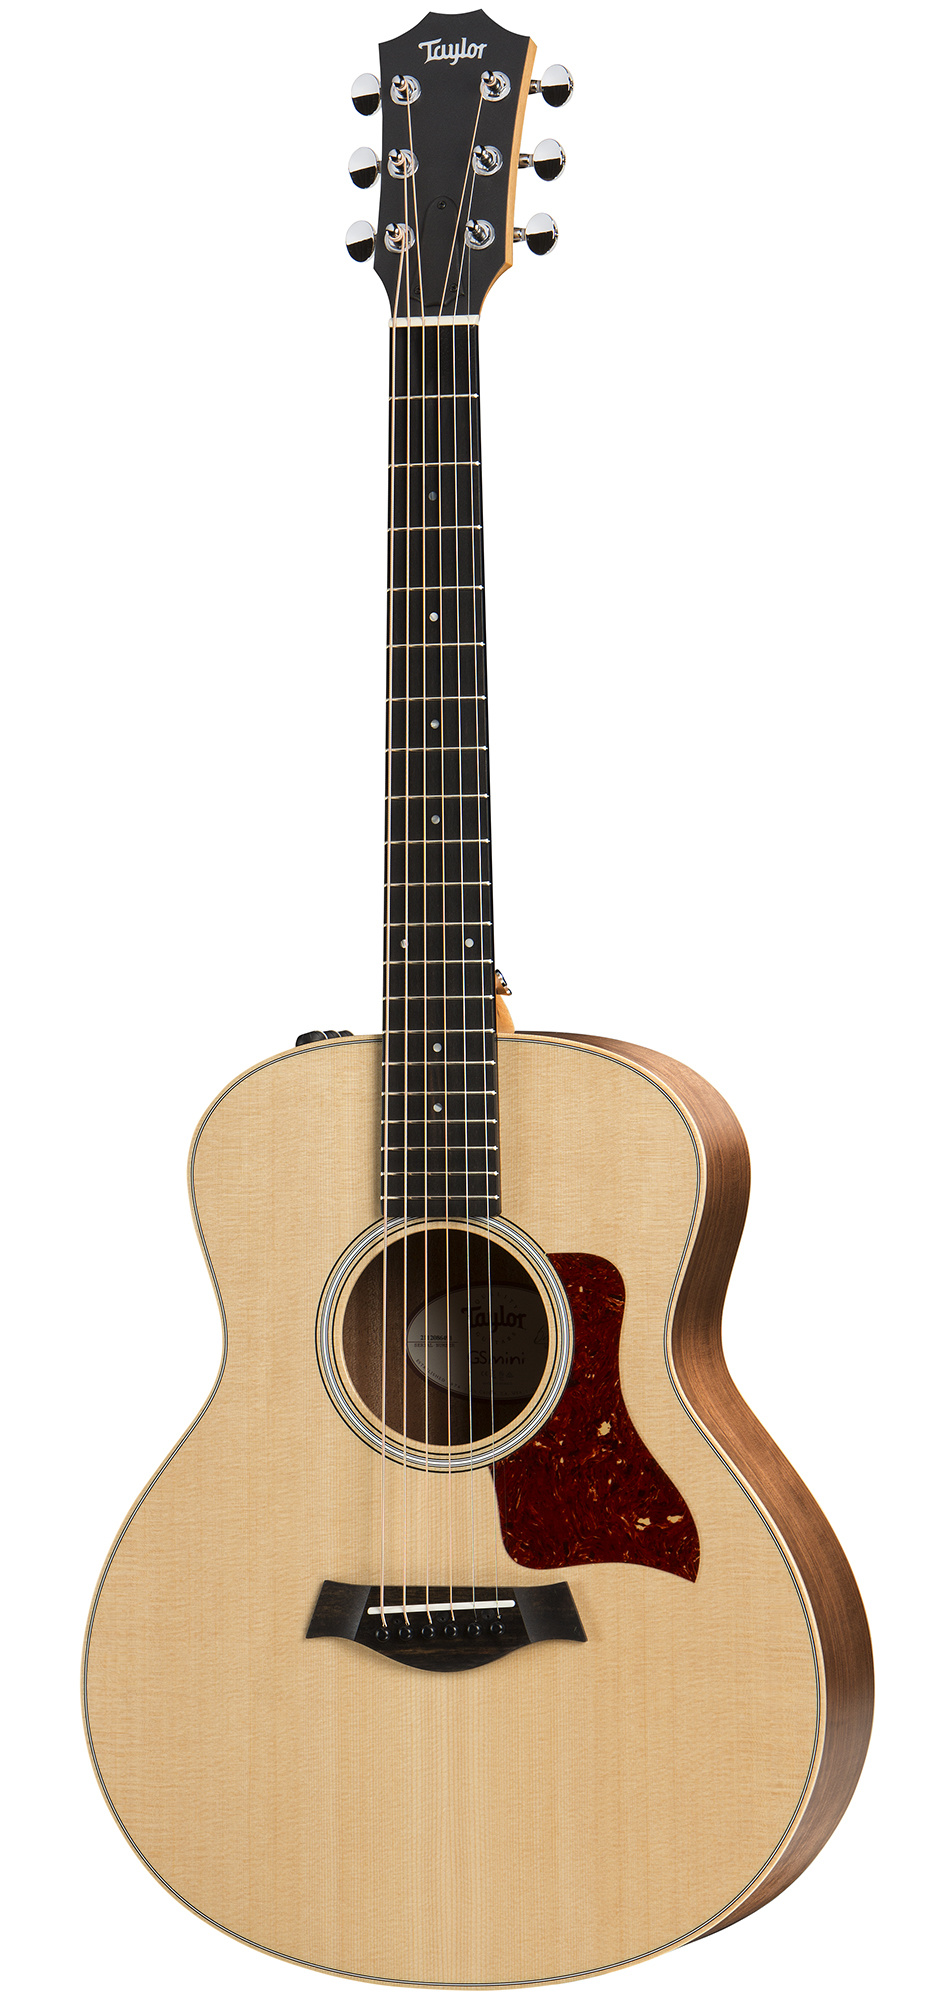 Taylor Guitars GS Mini-e Walnut